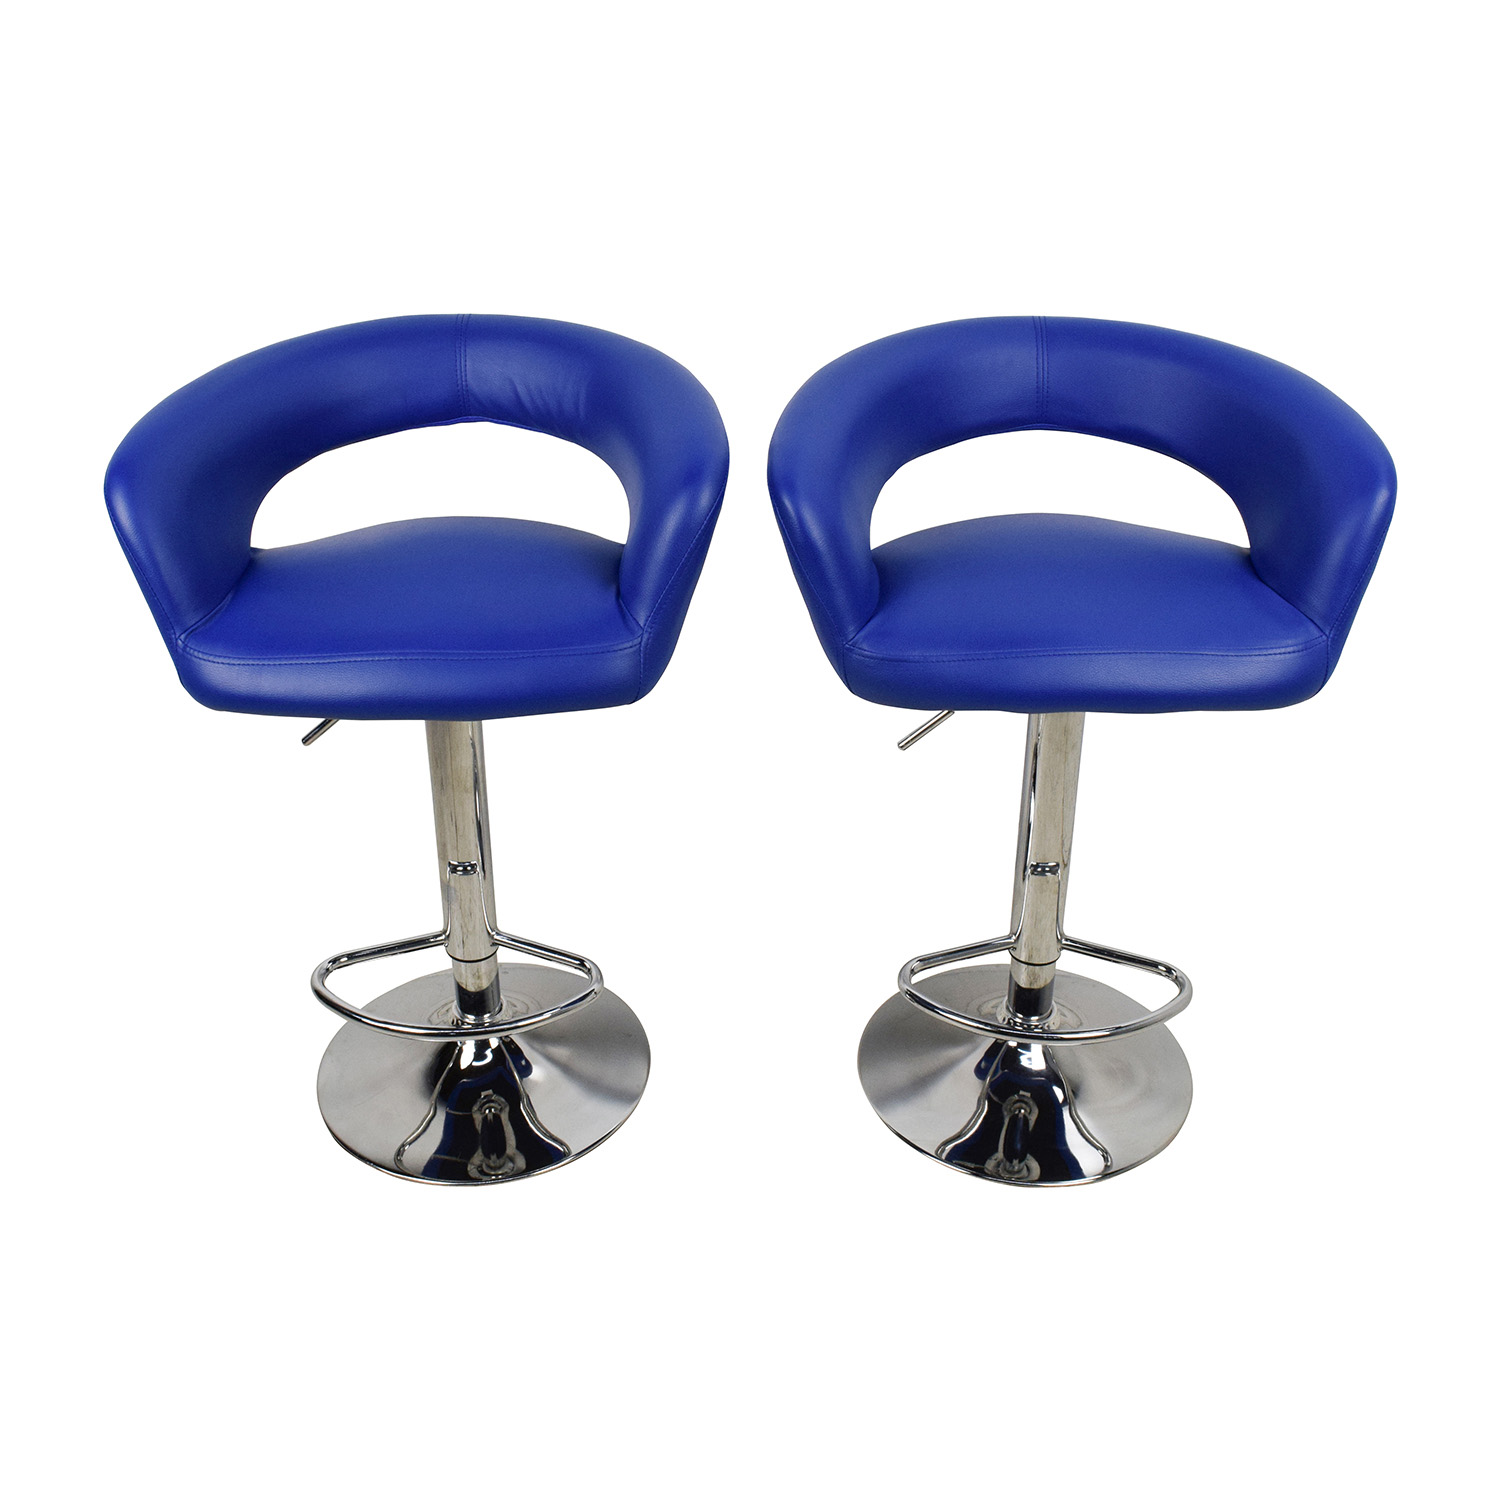 All Modern All Modern Blue Leather Adjustable Height Swivel Bar Stools Chairs